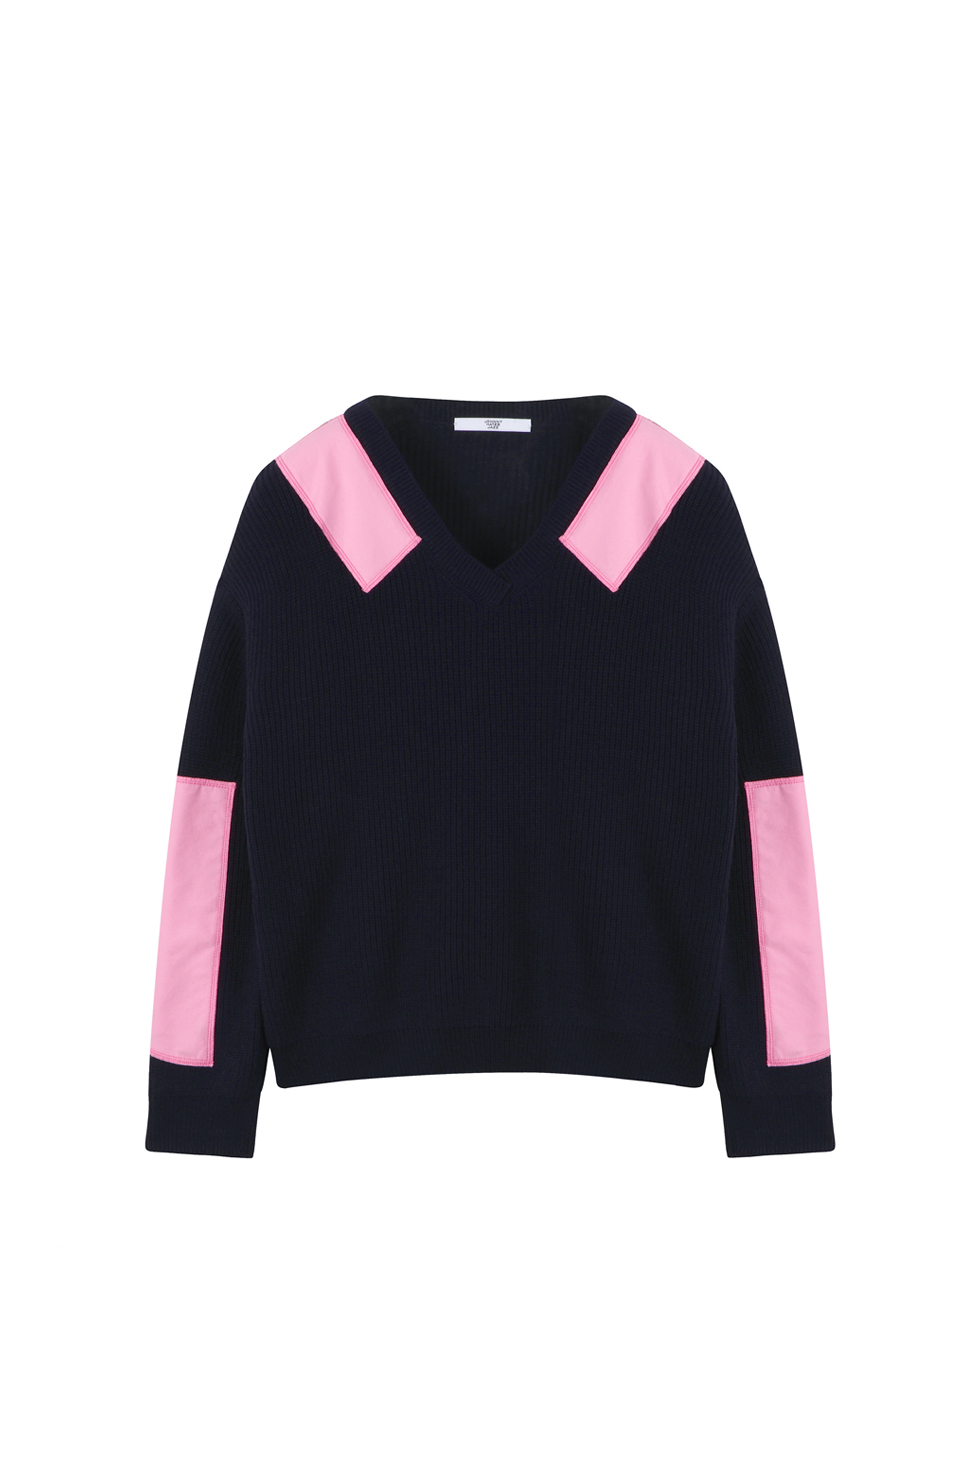 COTTON PATCH PULLOVER KNIT - NAVY